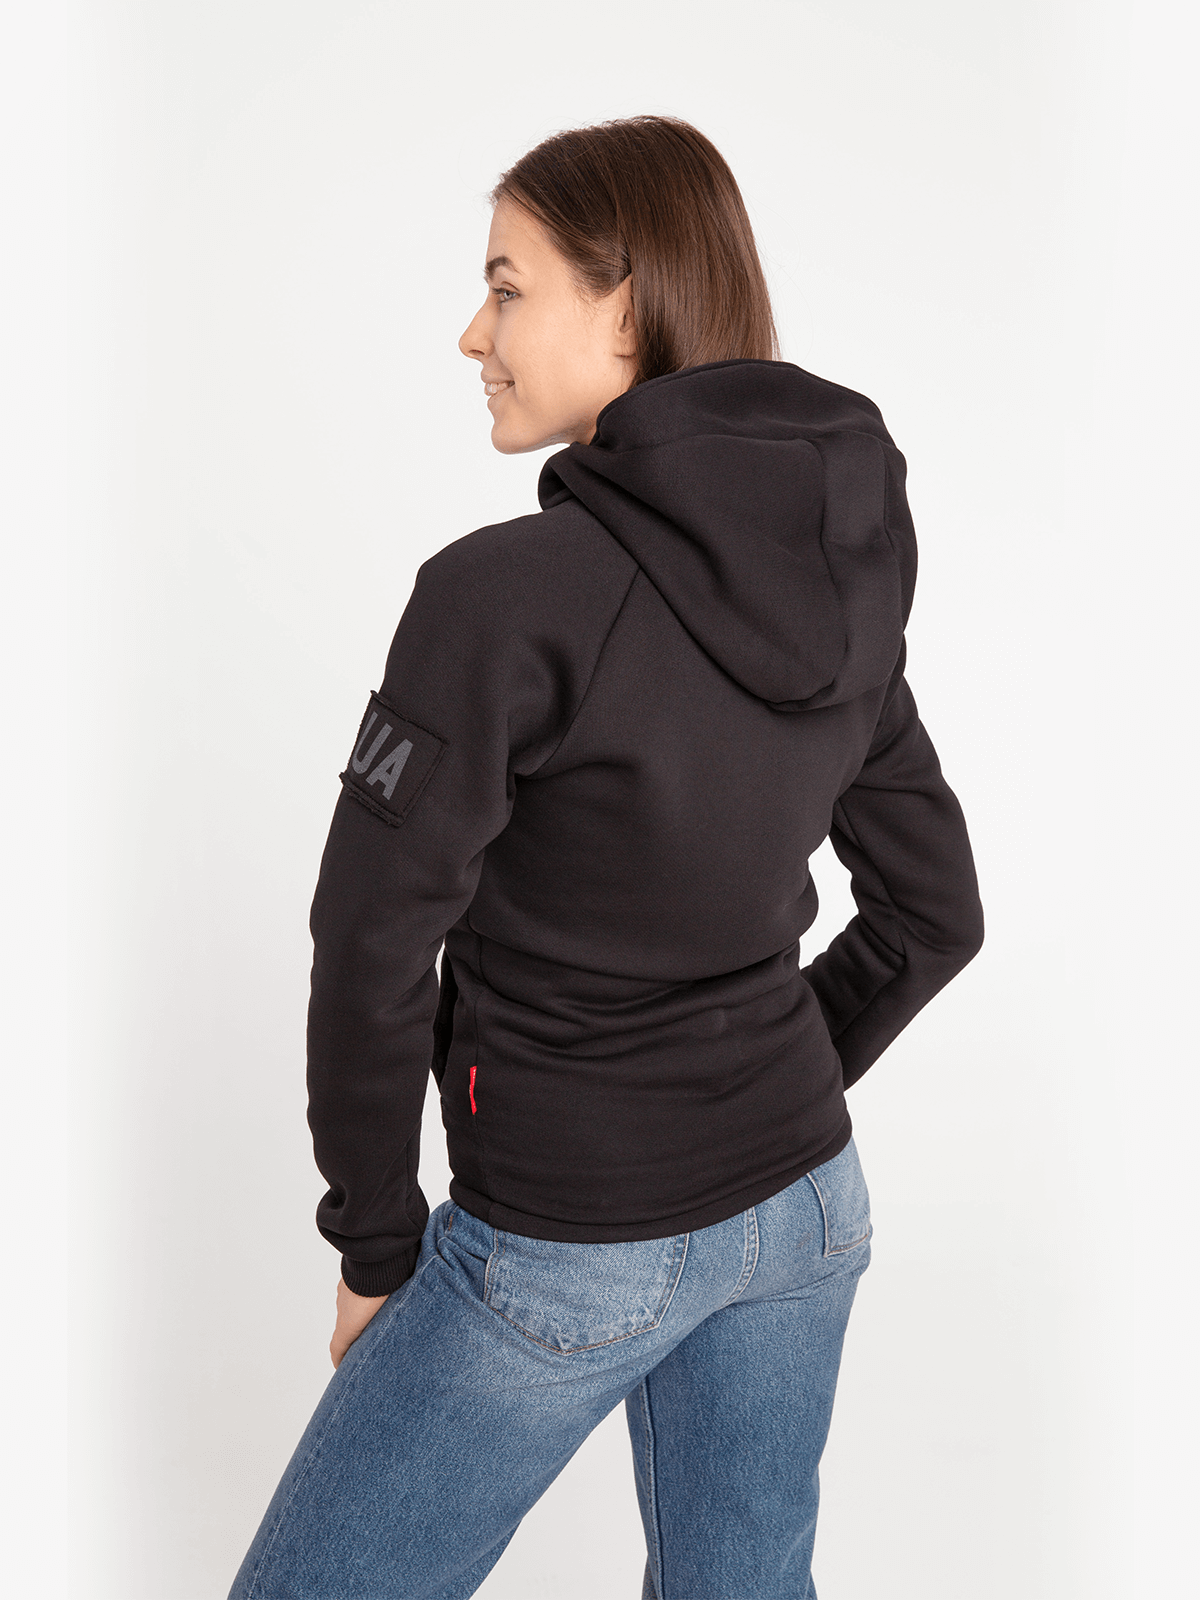 Women's Hoodie Roundel. Color black.  Don't worry about the universal size.